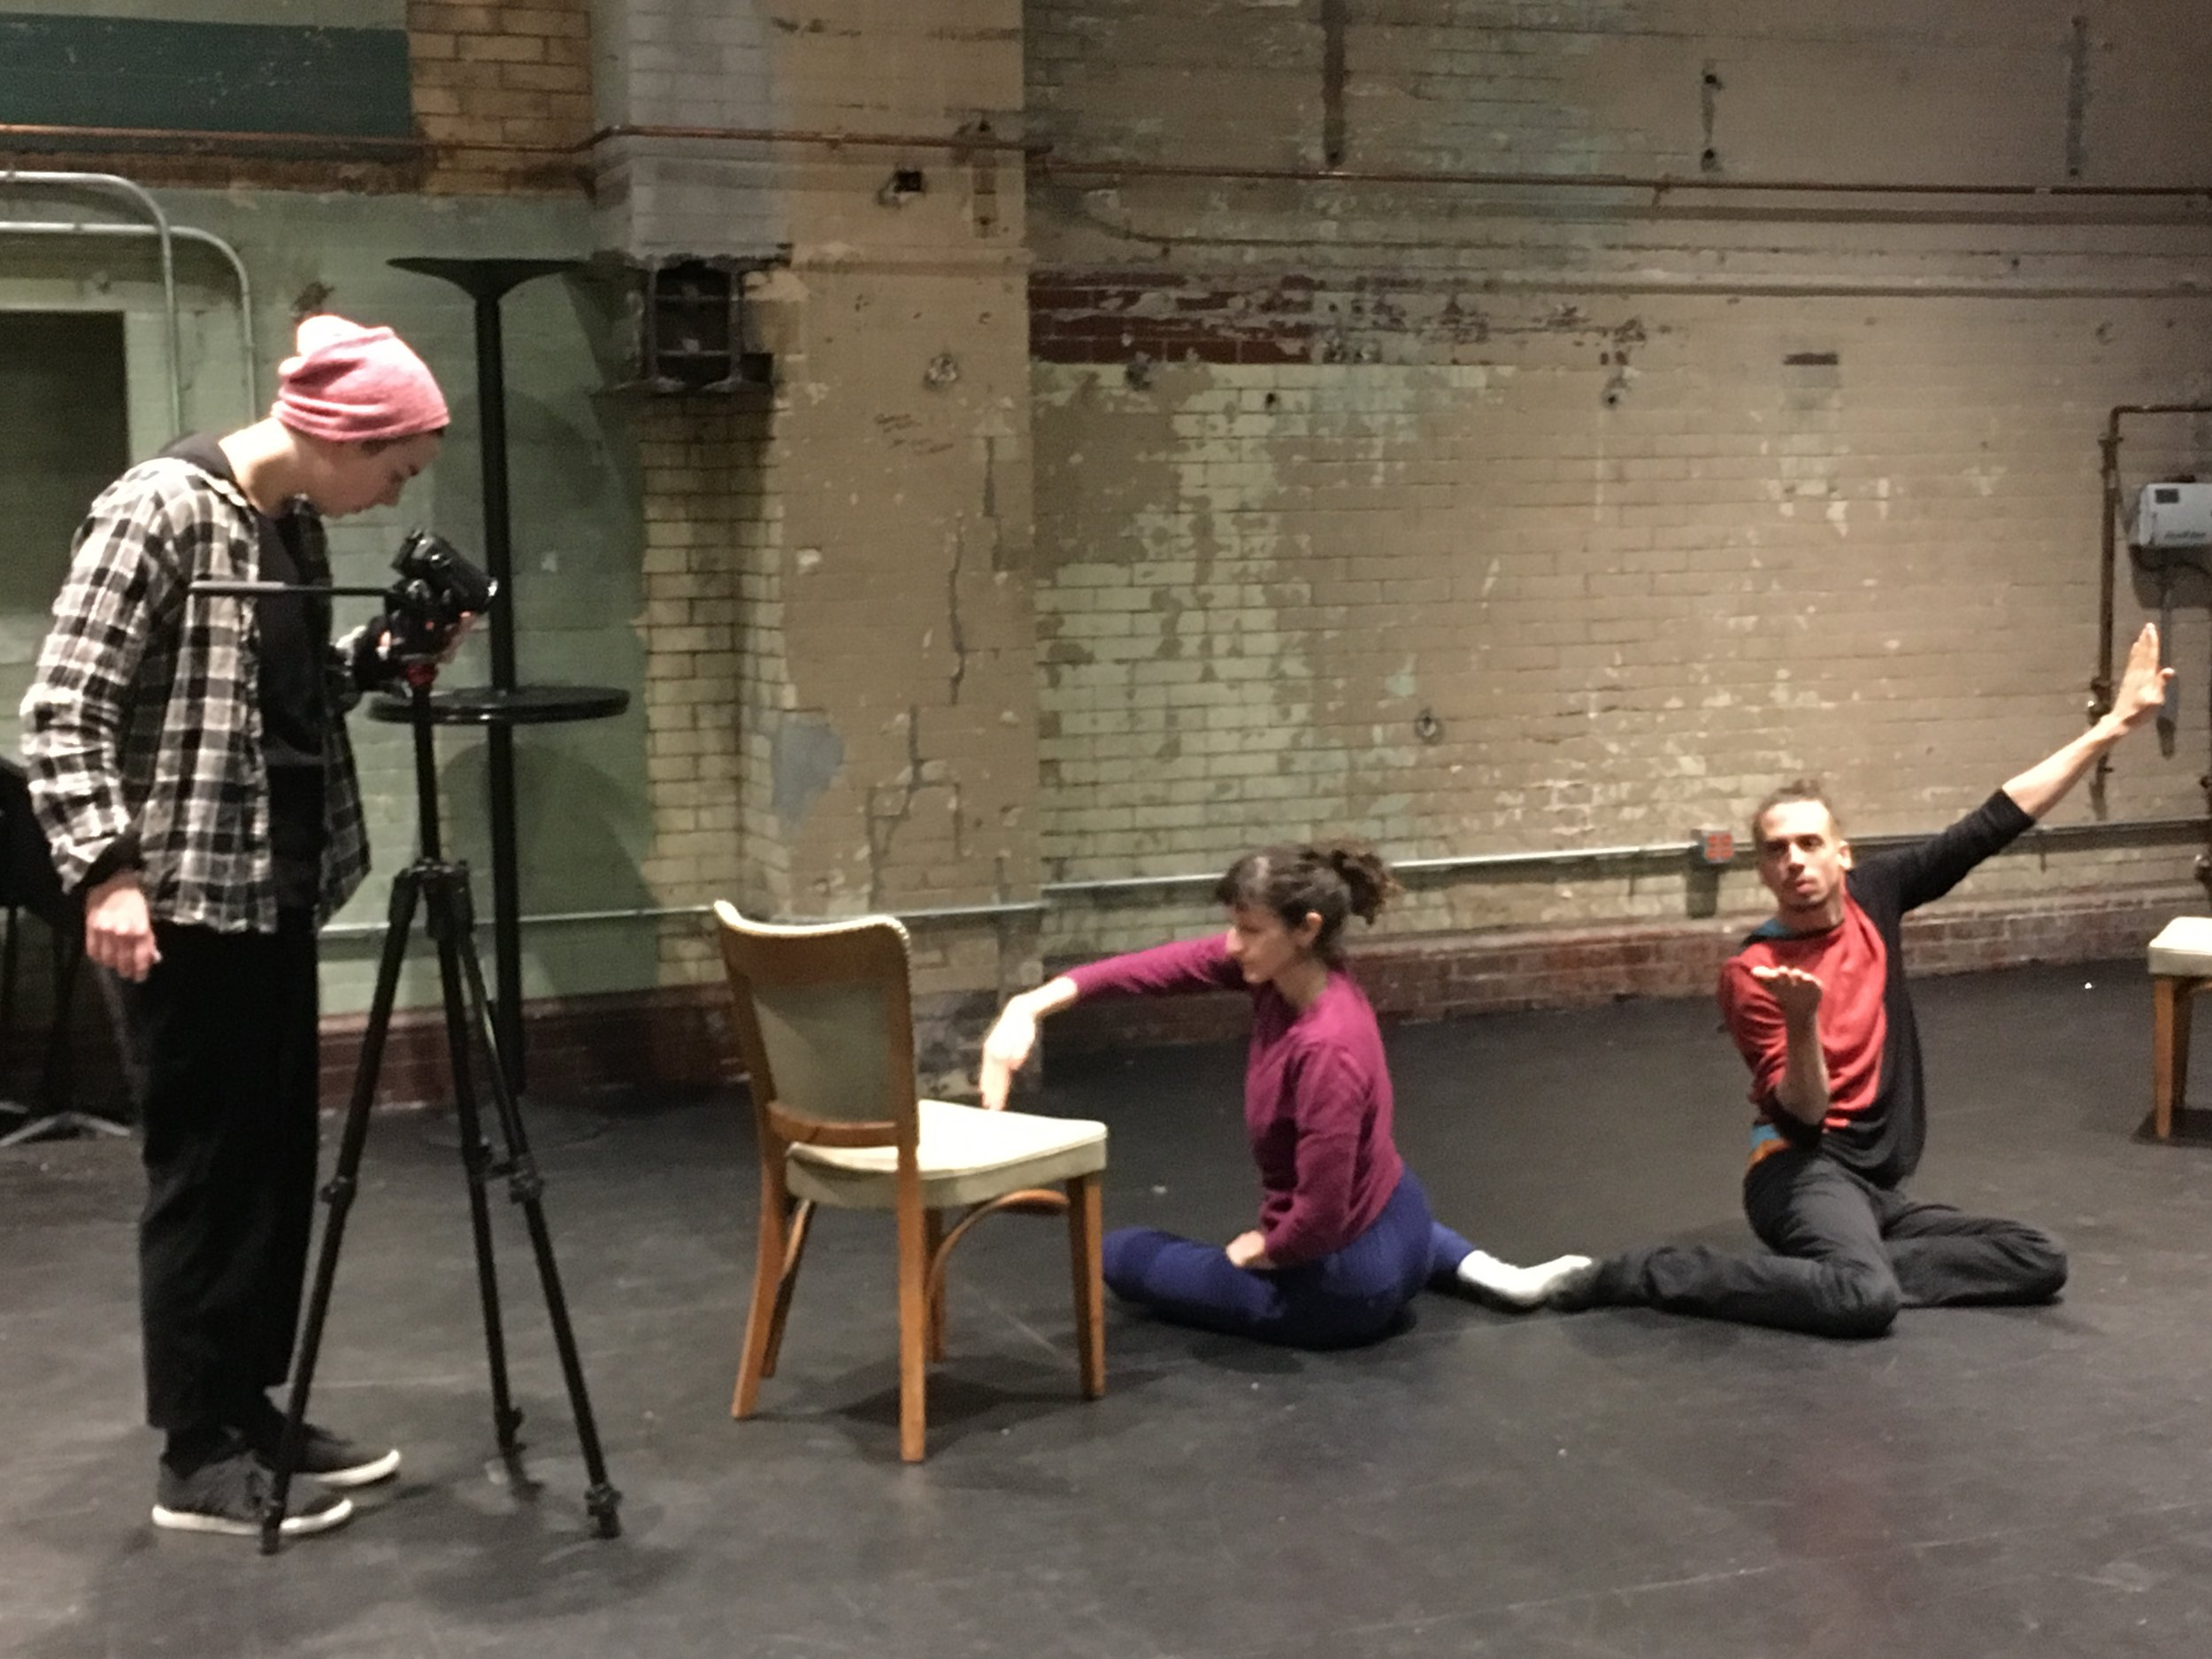 Ellen filming Gabi and Greg at the Philadelphia production residency. Photo: Lila Hurwitz